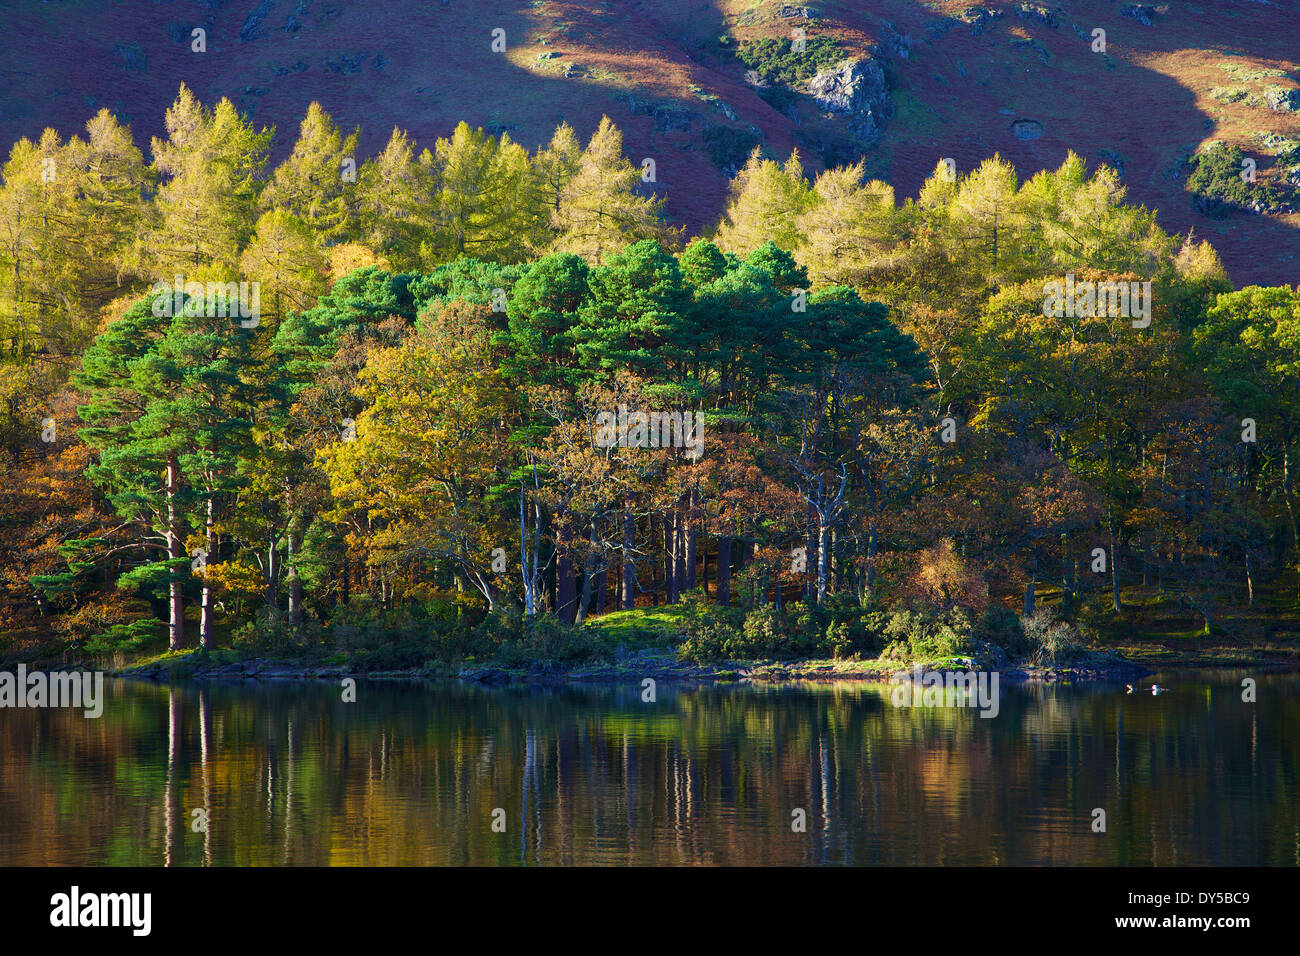 Autumn trees reflection in Derwent Water Borrowdale, English Lake District, Cumbria, North West England, United Kingdom. - Stock Image